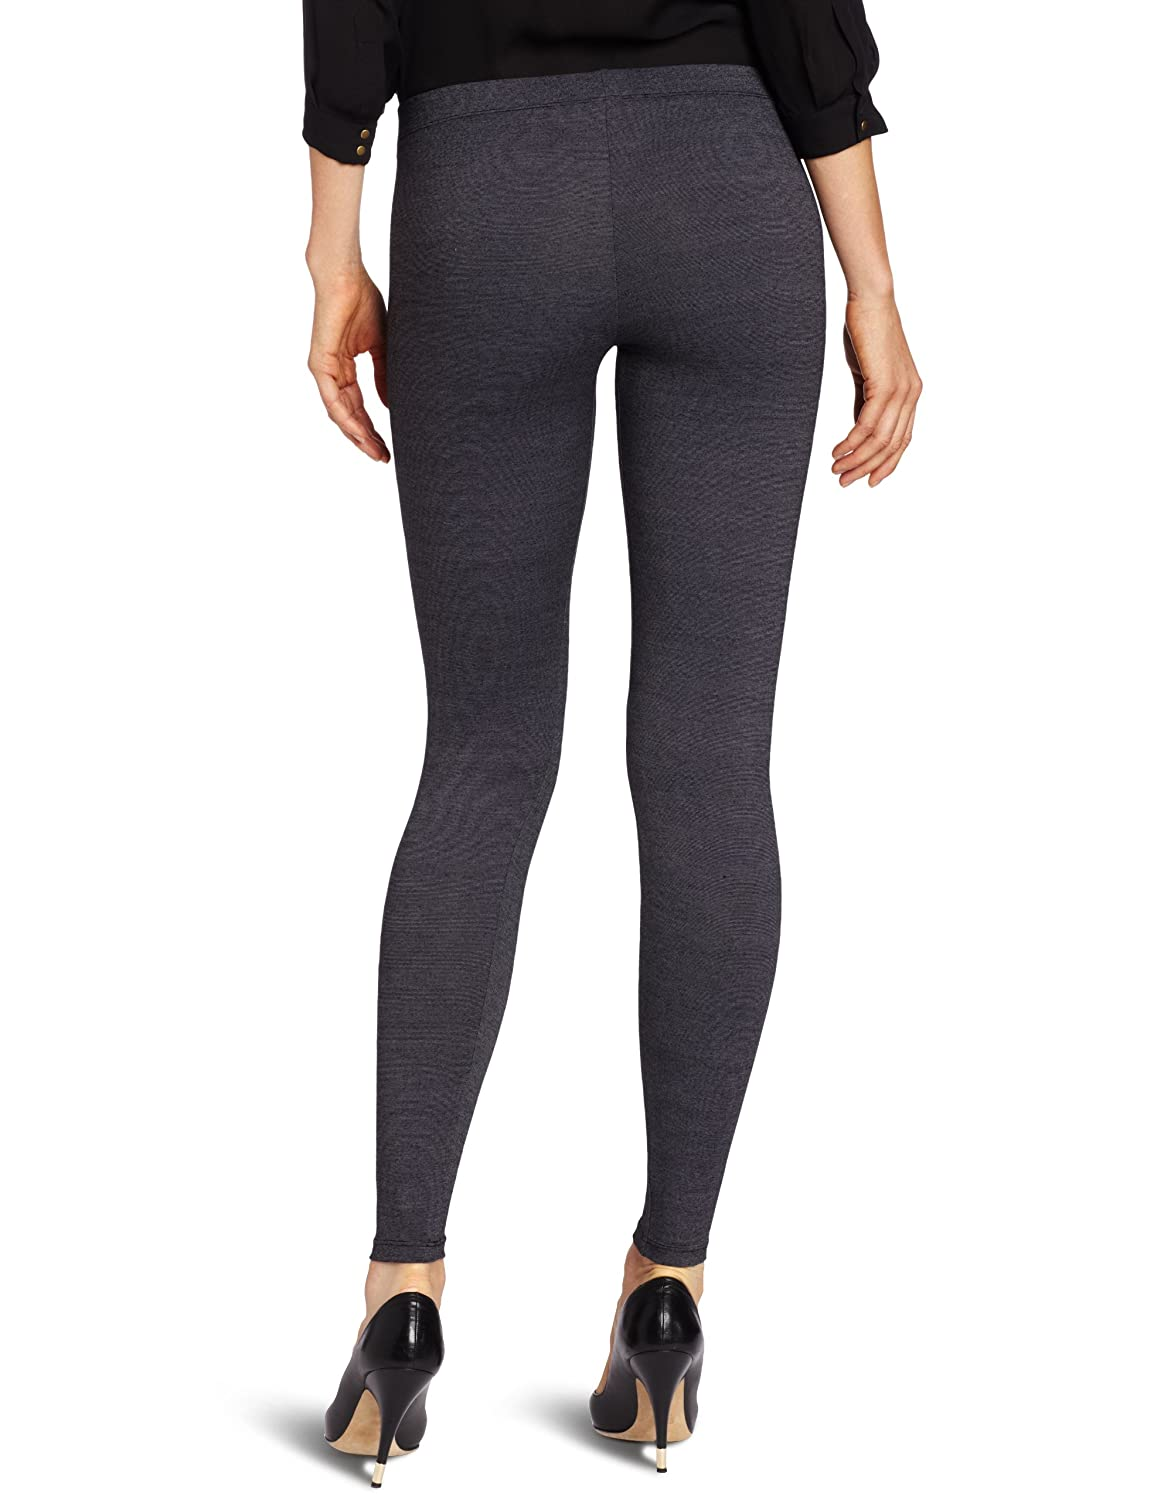 a22f37a241a8f David Lerner Women's Lightweight Basic Micro Fabric Legging - Black -:  Amazon.co.uk: Clothing